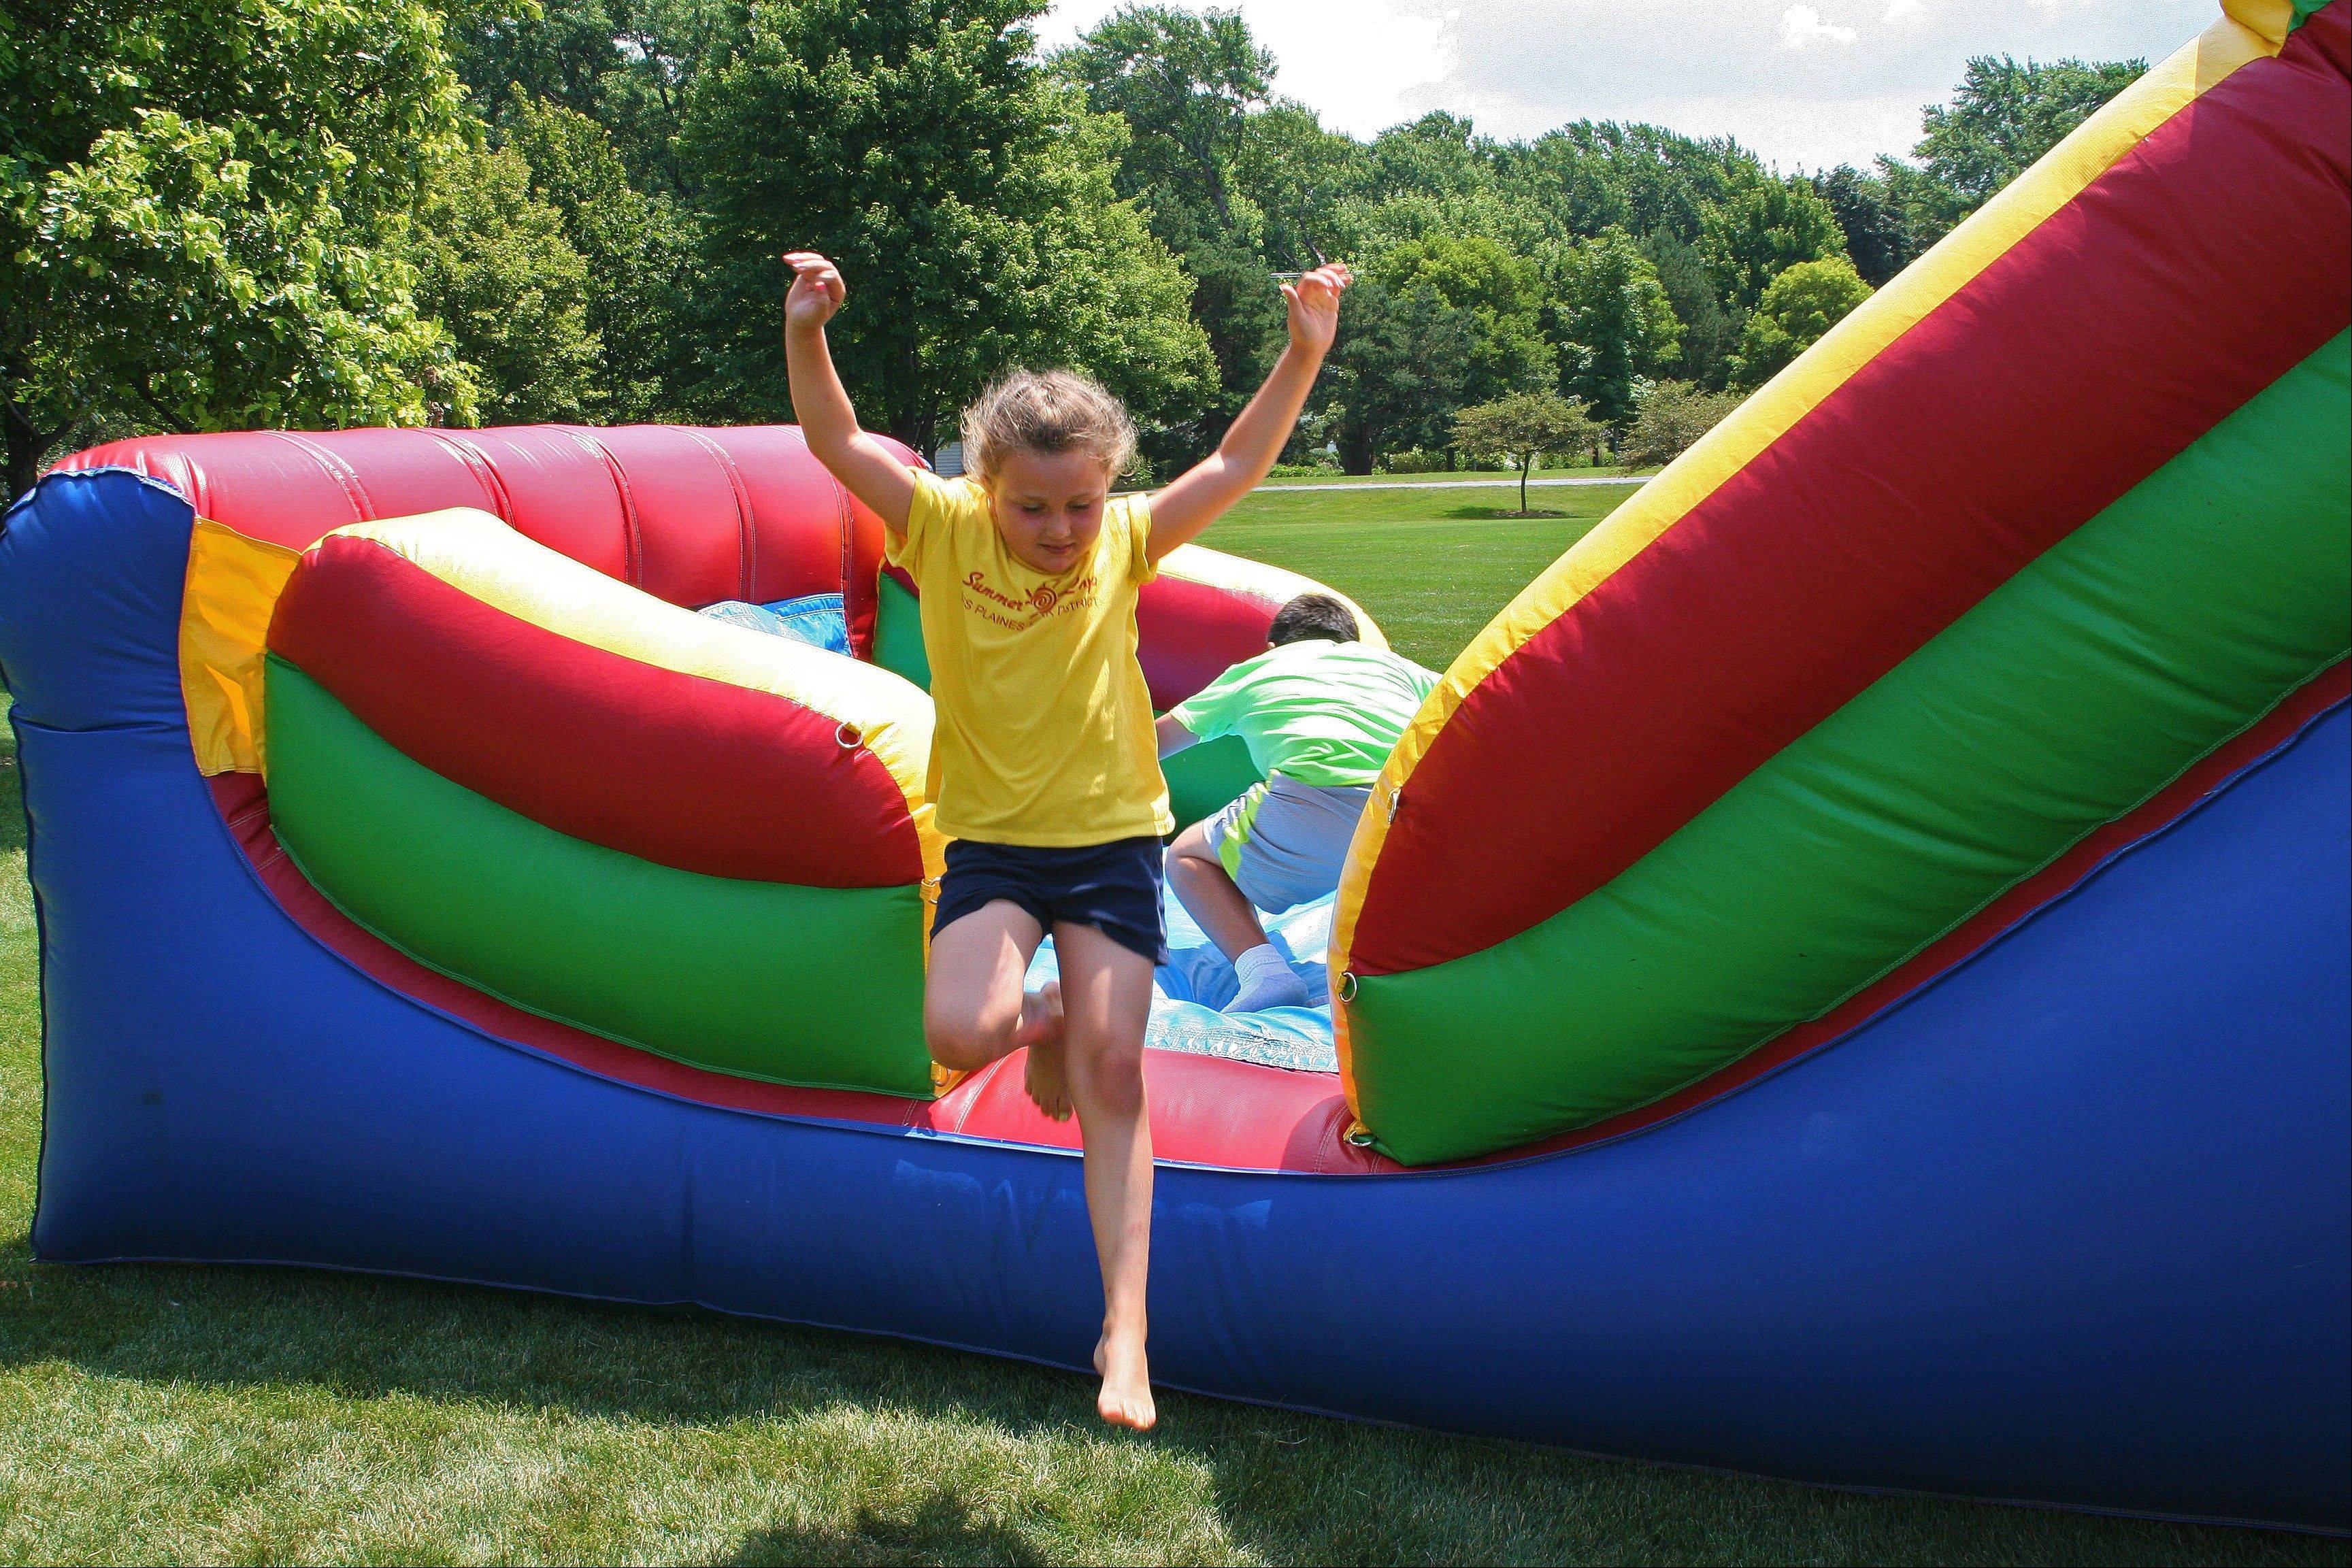 Camp Chickagami beats the Sports Xplosion camp in a race through the inflatable obstacle course during the 2013 All Camp Field Day at Prairie Lakes July 17.